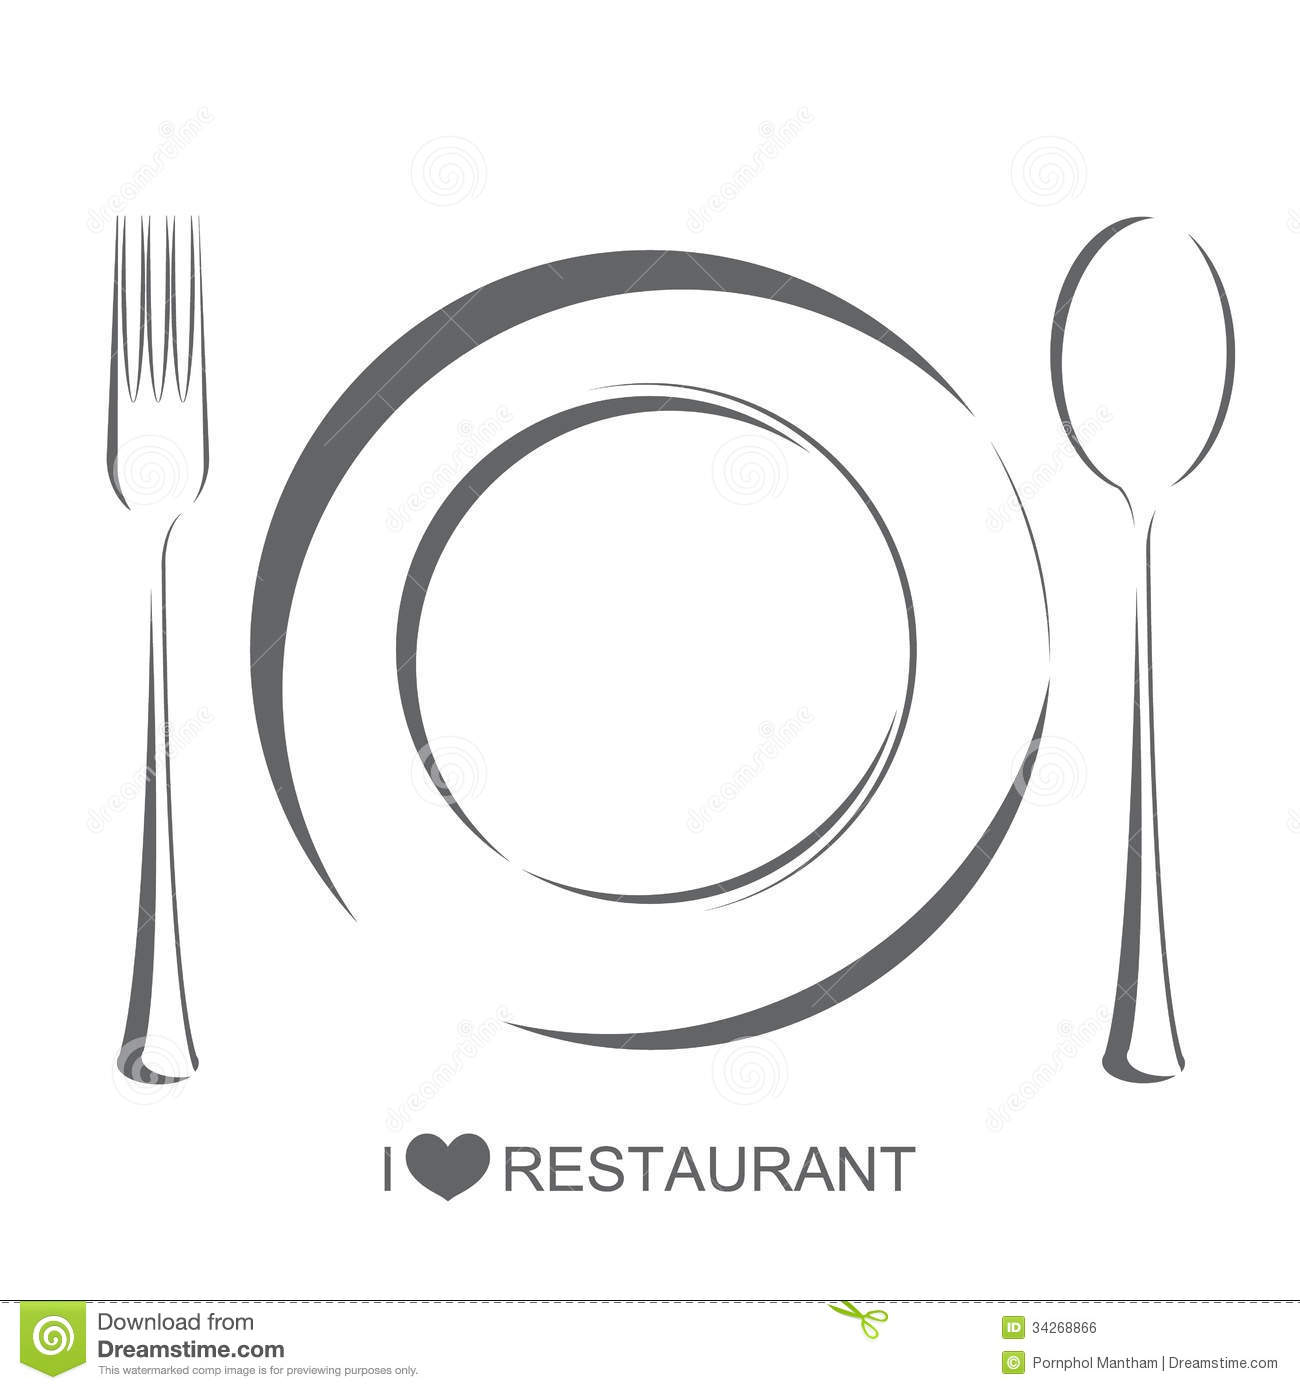 Restaurant, Plate Fork Spoon Royalty Free Stock Image ...